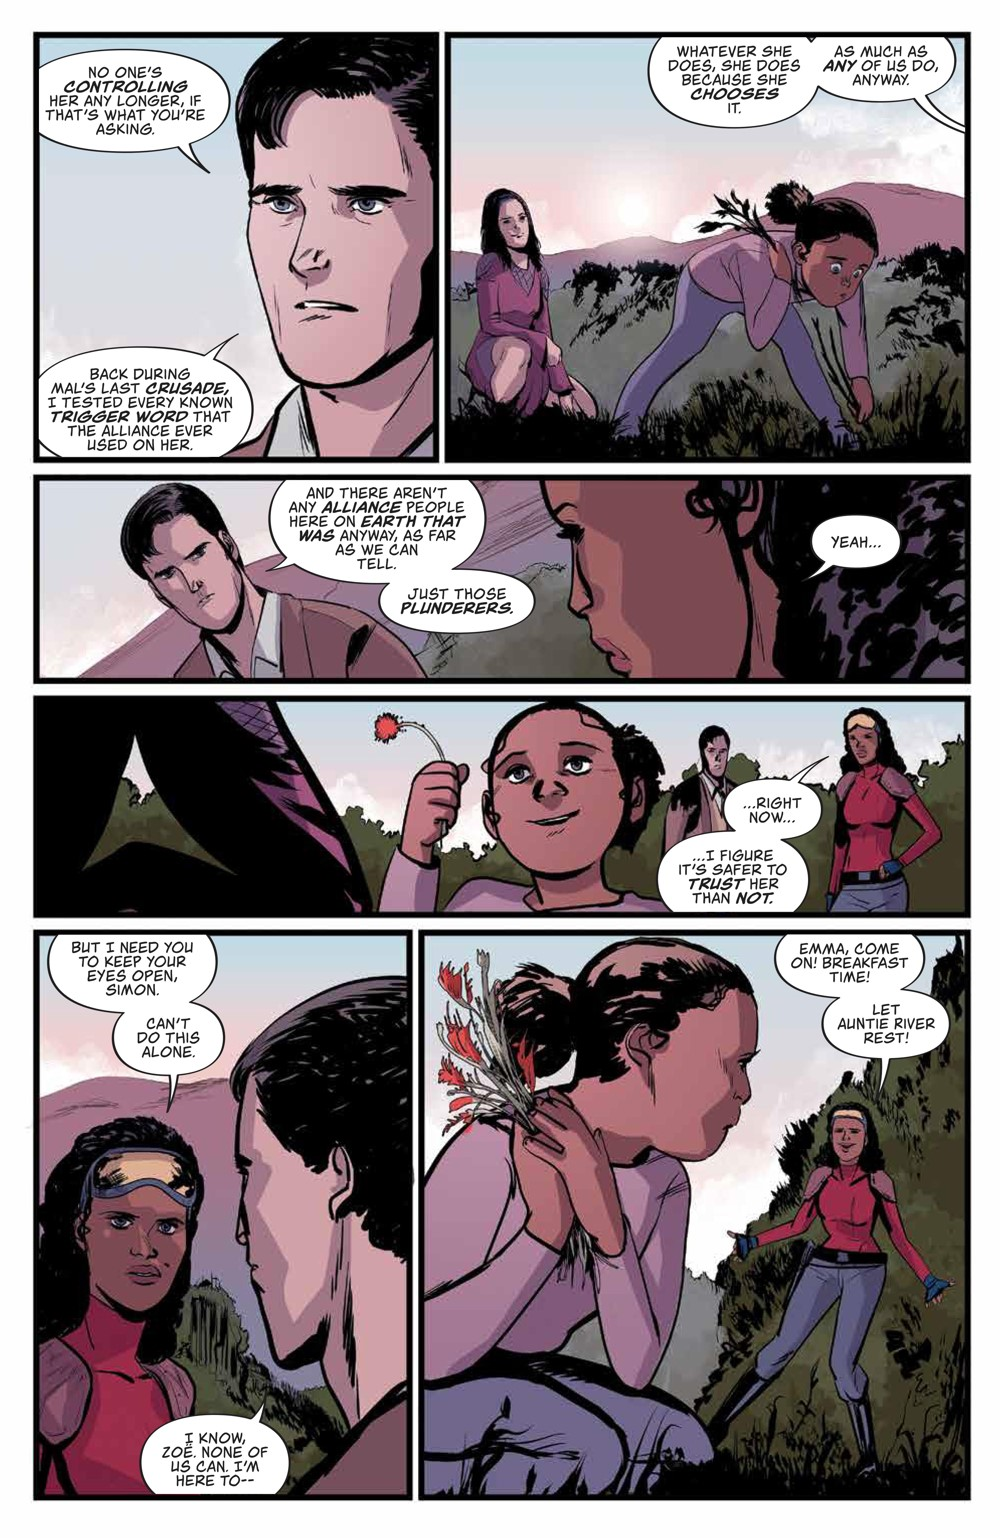 Firefly_031_PRESS_8 ComicList Previews: FIREFLY #31